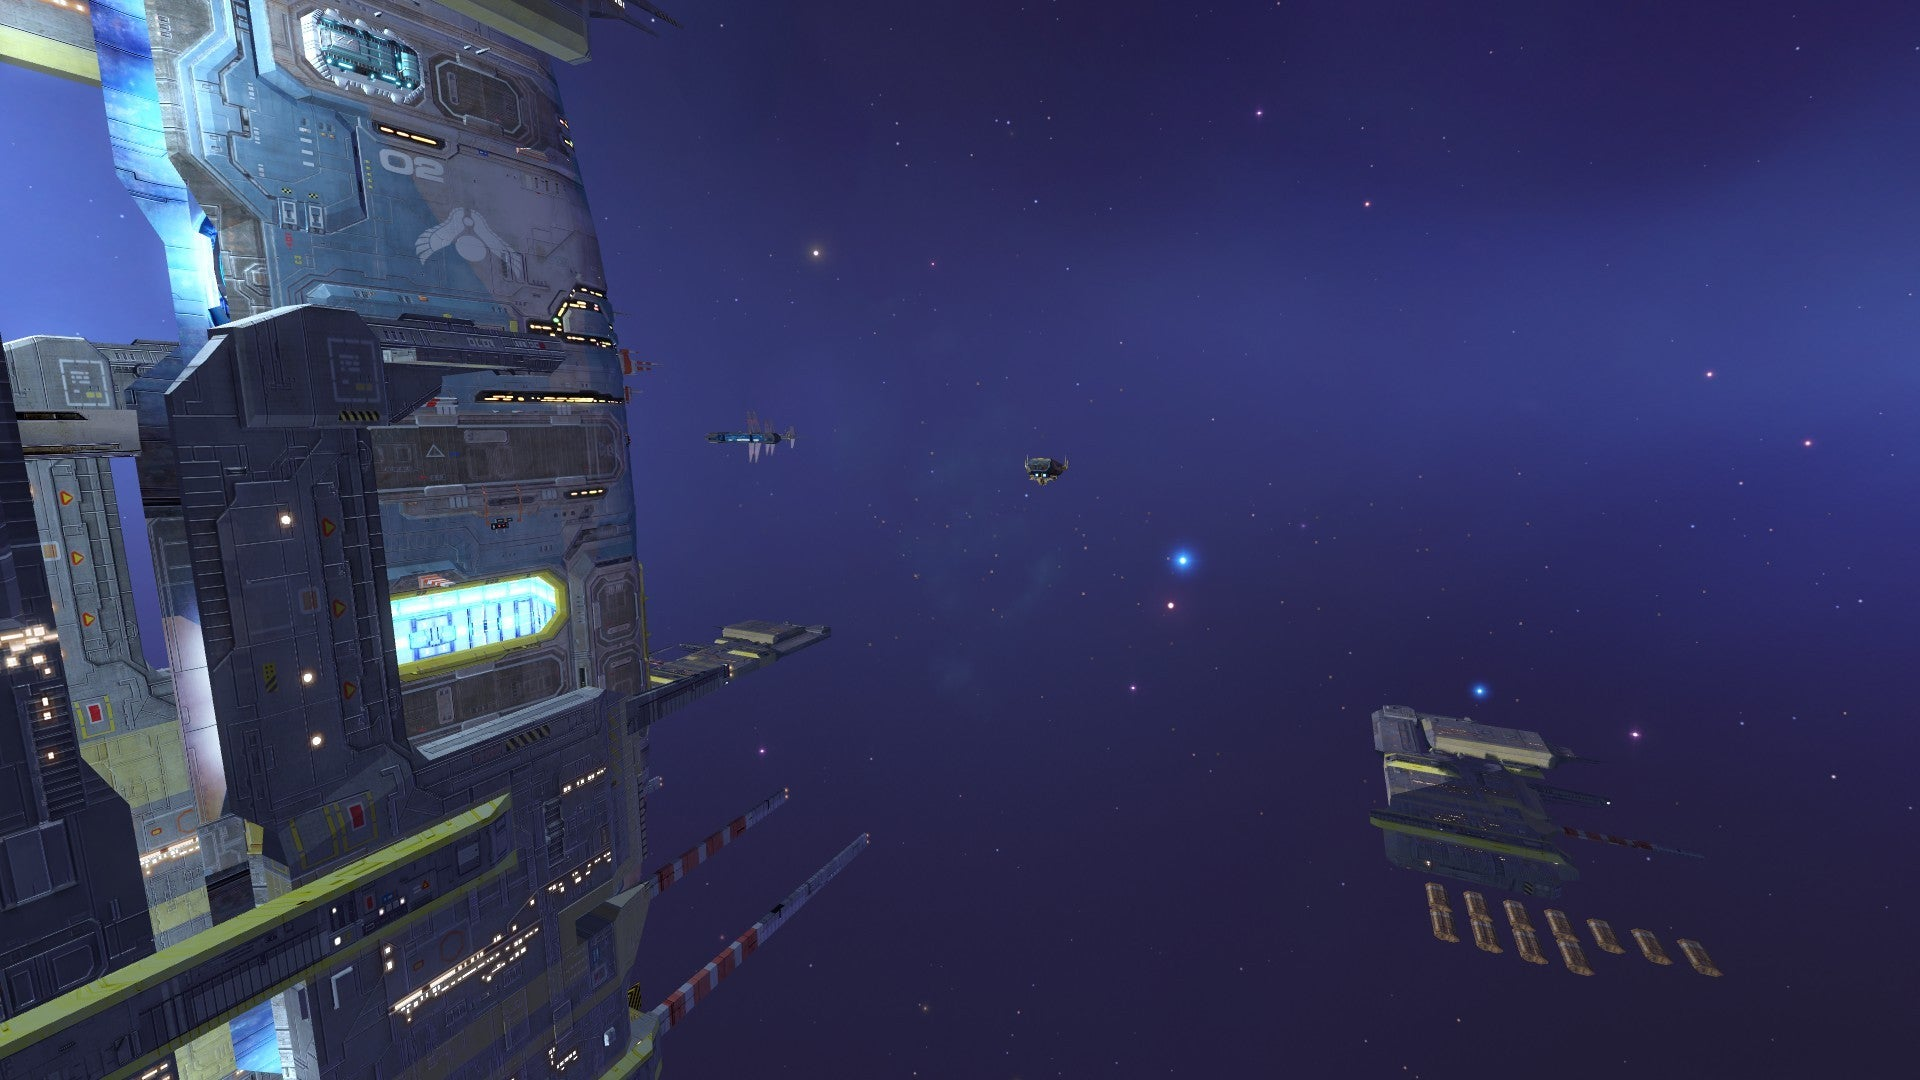 Homeworld Remastered review: There's no place like Home(world) | PCWorld